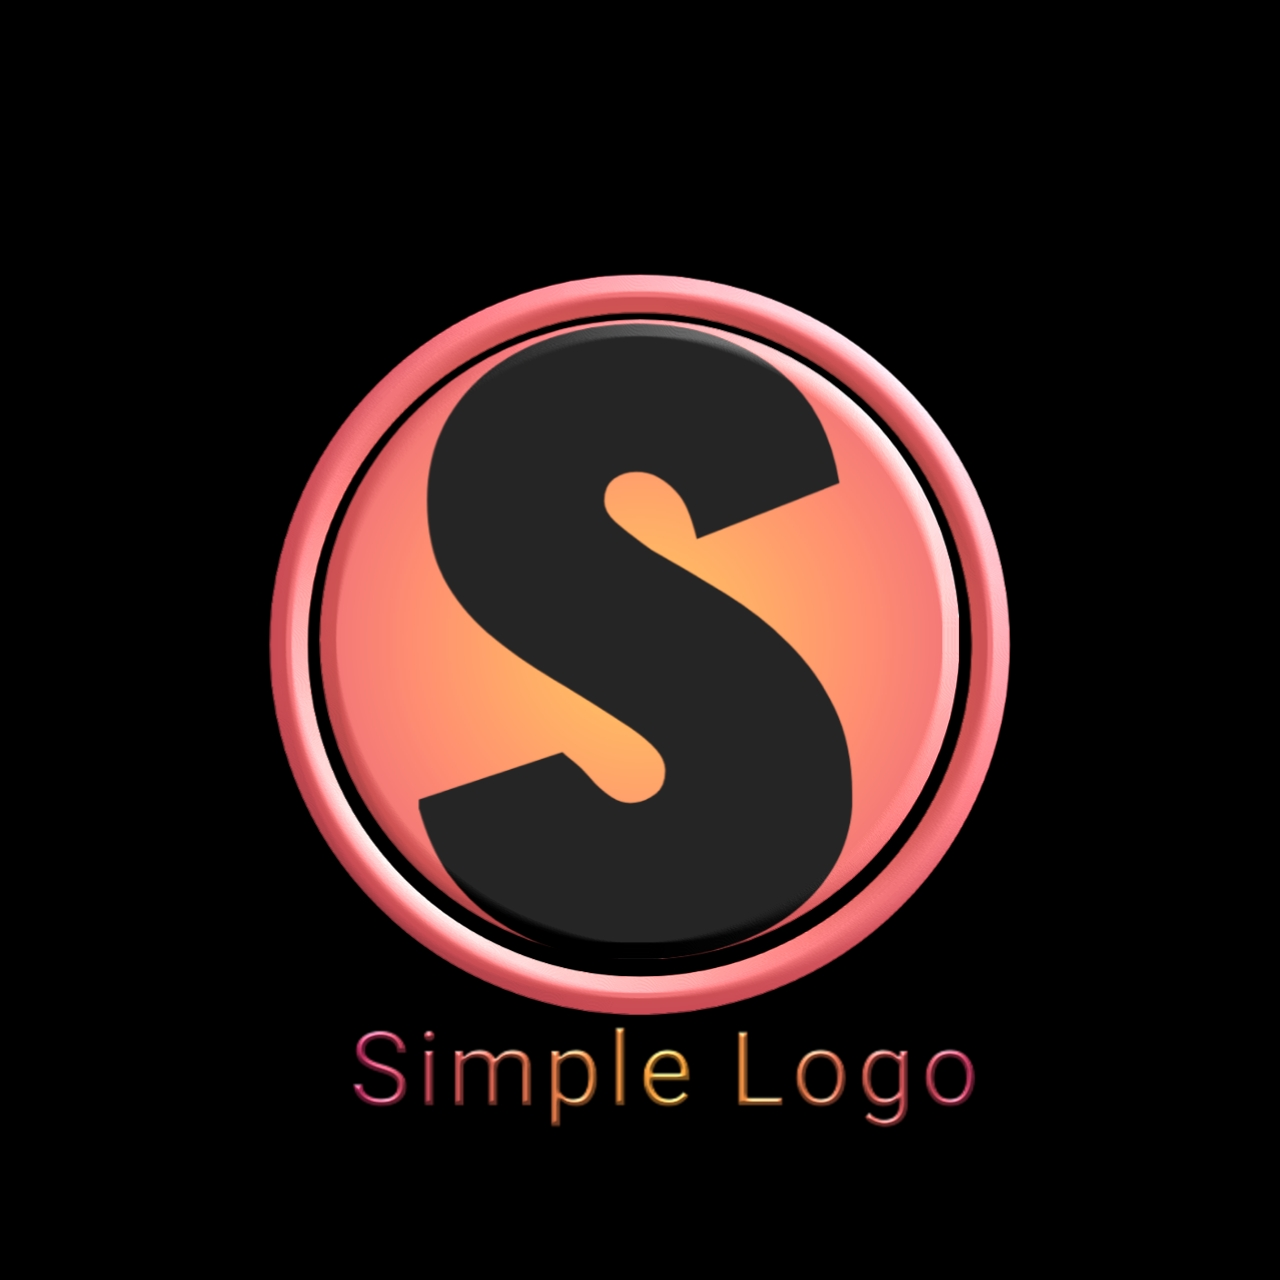 The Logo Business Design you have been waiting for is with me